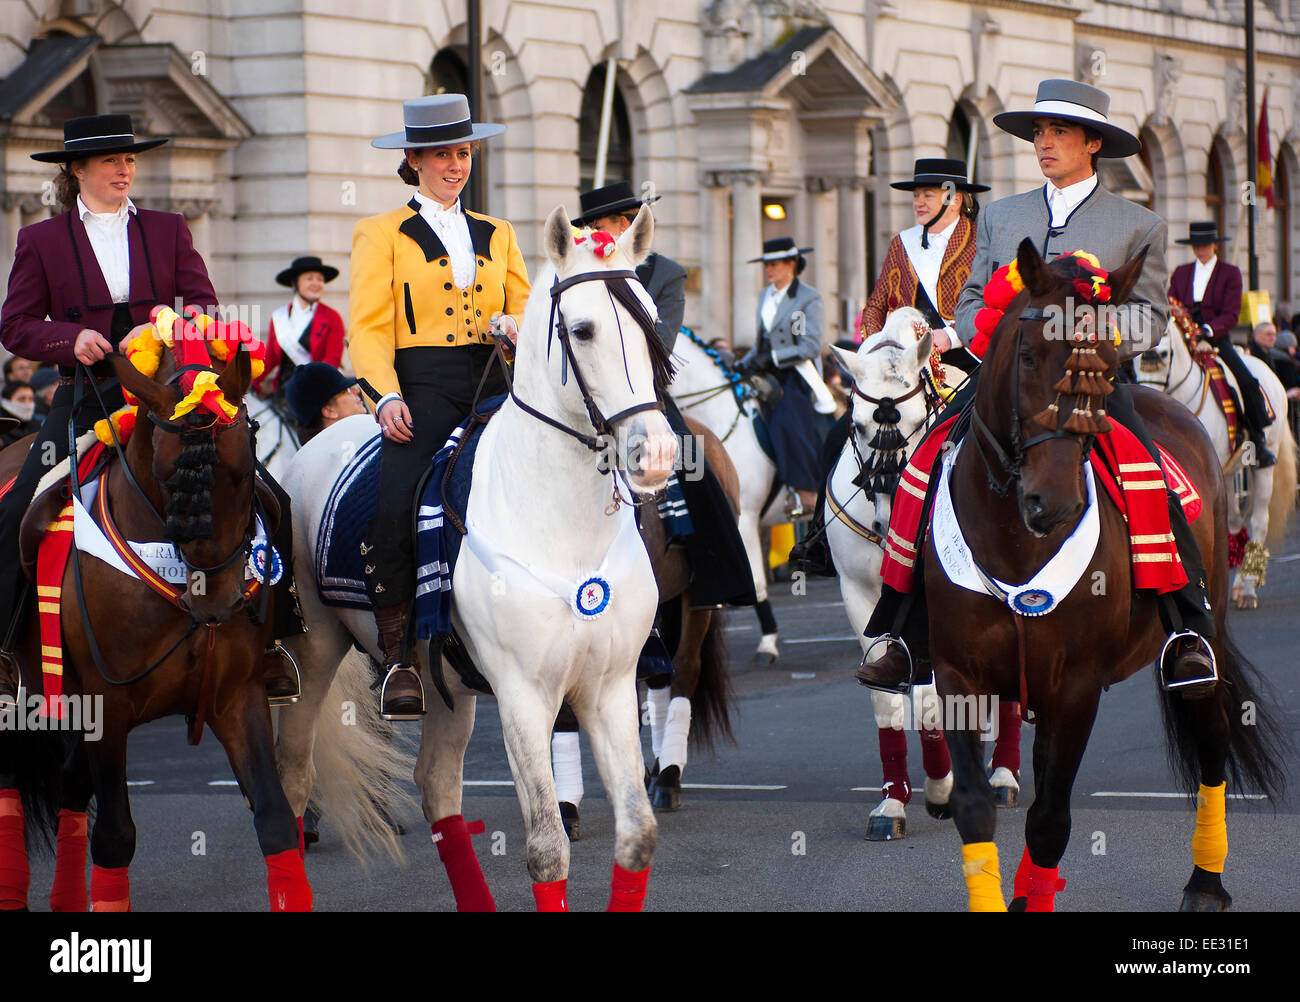 The Queen's horses appeared in the 2013 New Year's Day Parade, ridden by a colourful variety of different horsemen - Stock Image